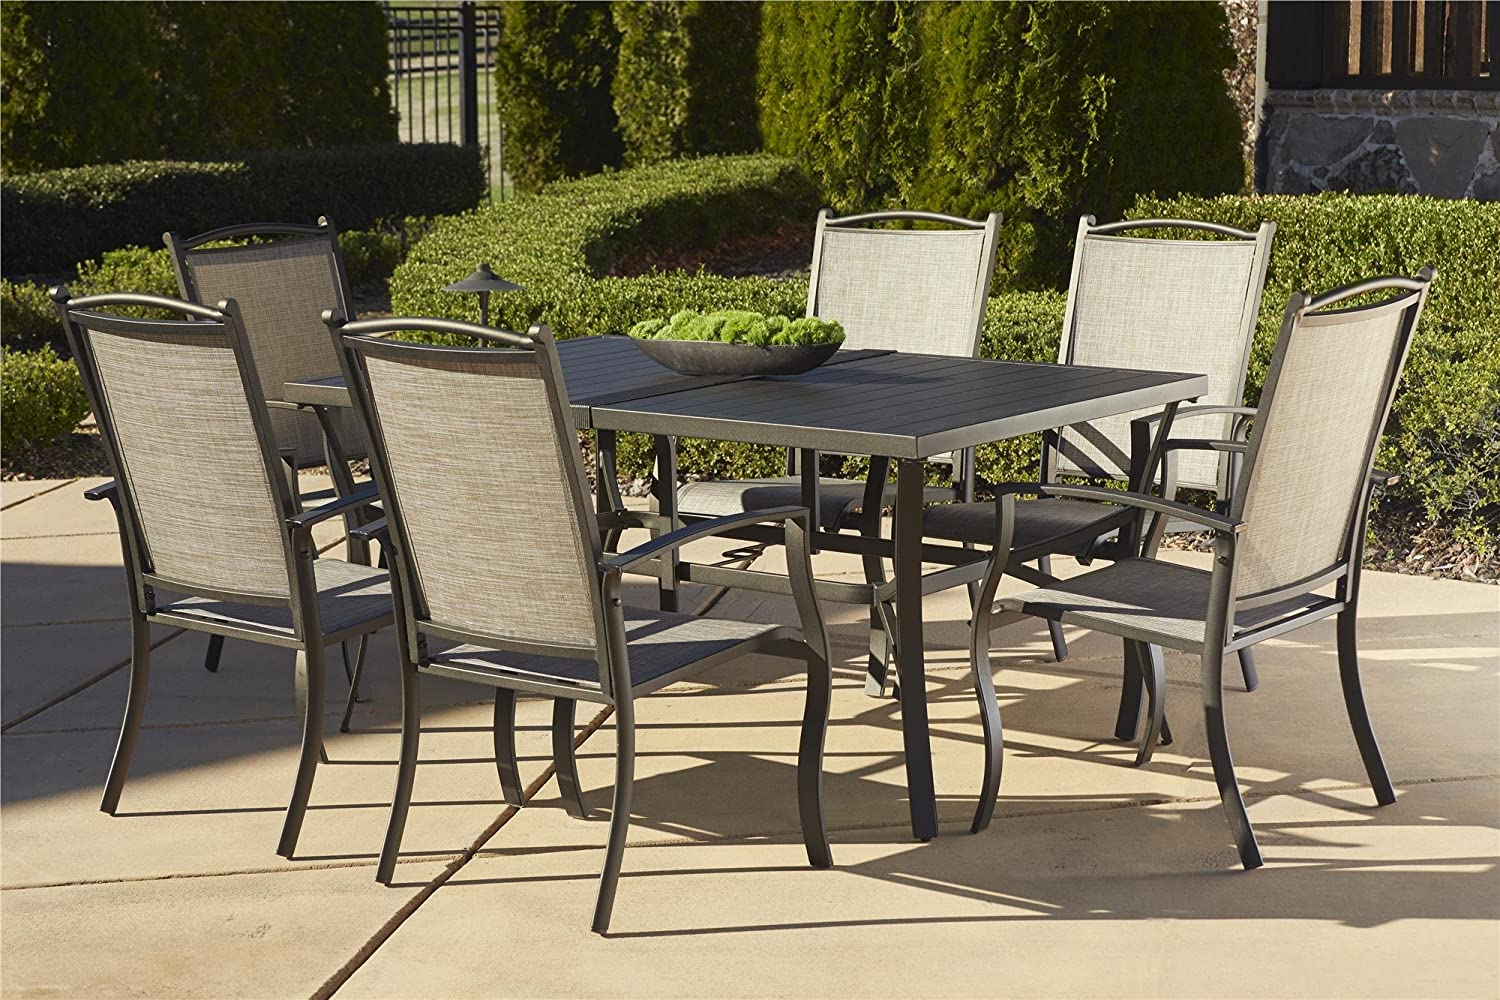 Amazon.com: Cosco Outdoor 7 Piece Serene Ridge Aluminum Patio Dining Set,  Dark Brown: Garden U0026 Outdoor